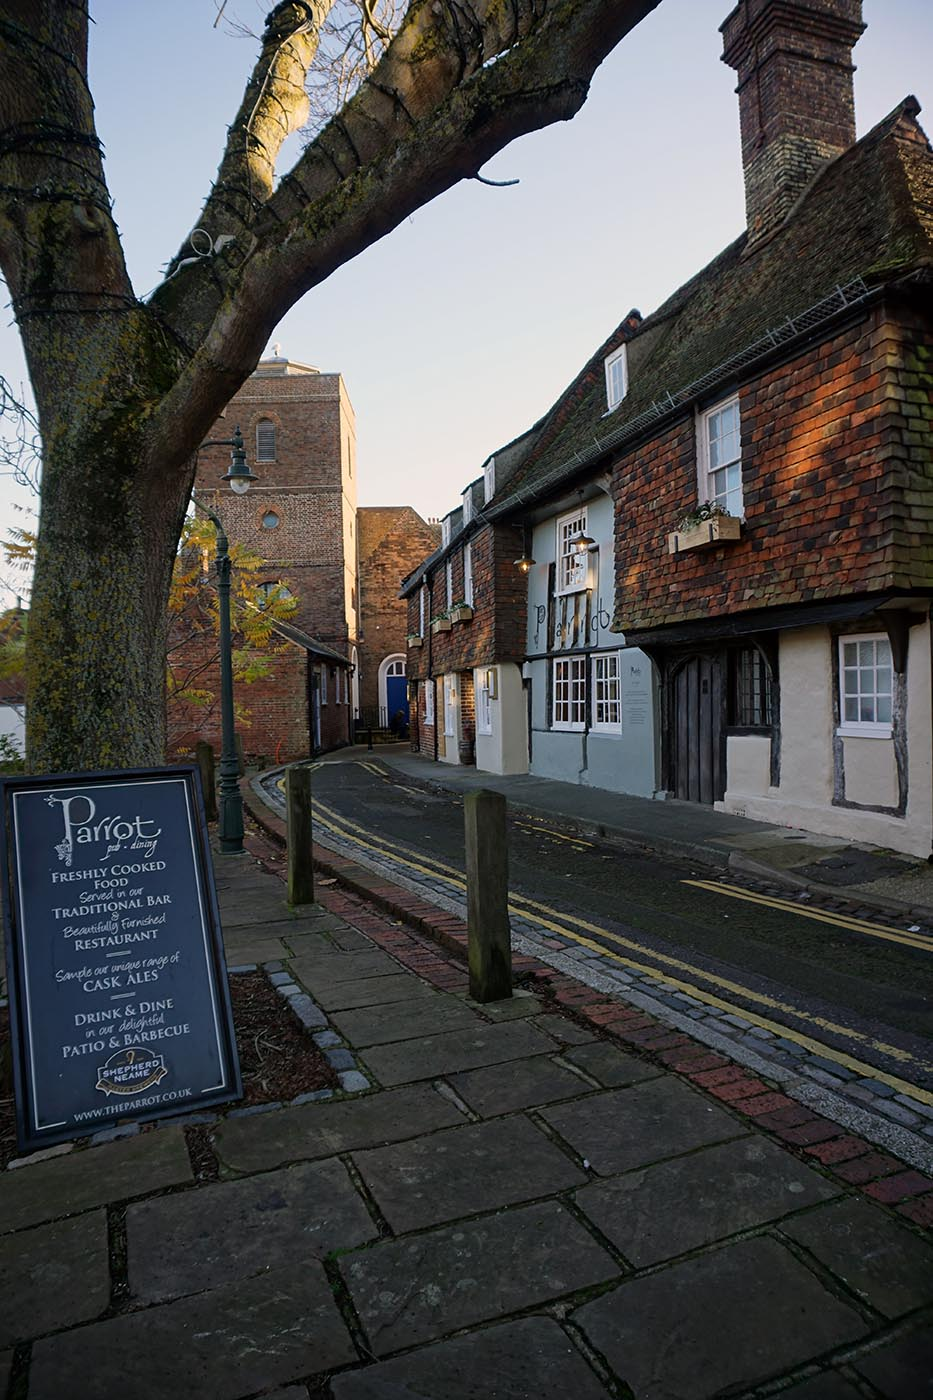 The Parrot Pub, Canterbury